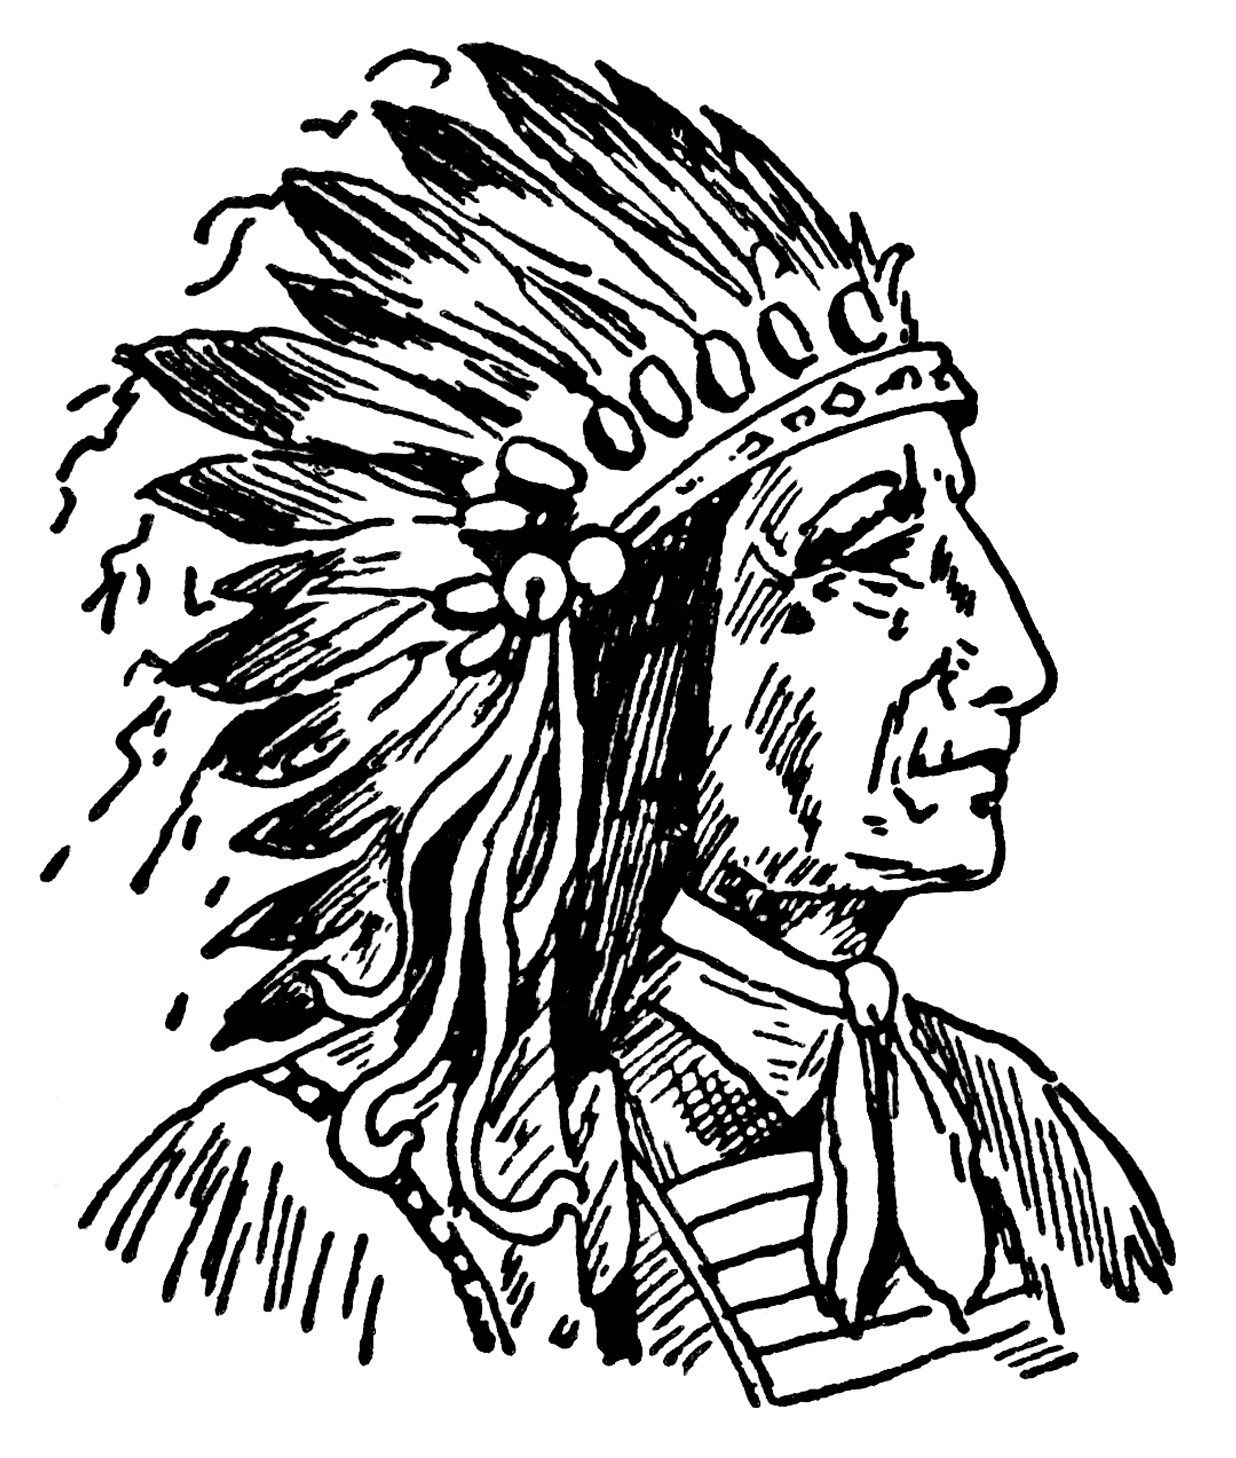 indian chief clip art vintage native american illustration black and white clipart warrior brave graphics indian art sketch [ 1236 x 1458 Pixel ]